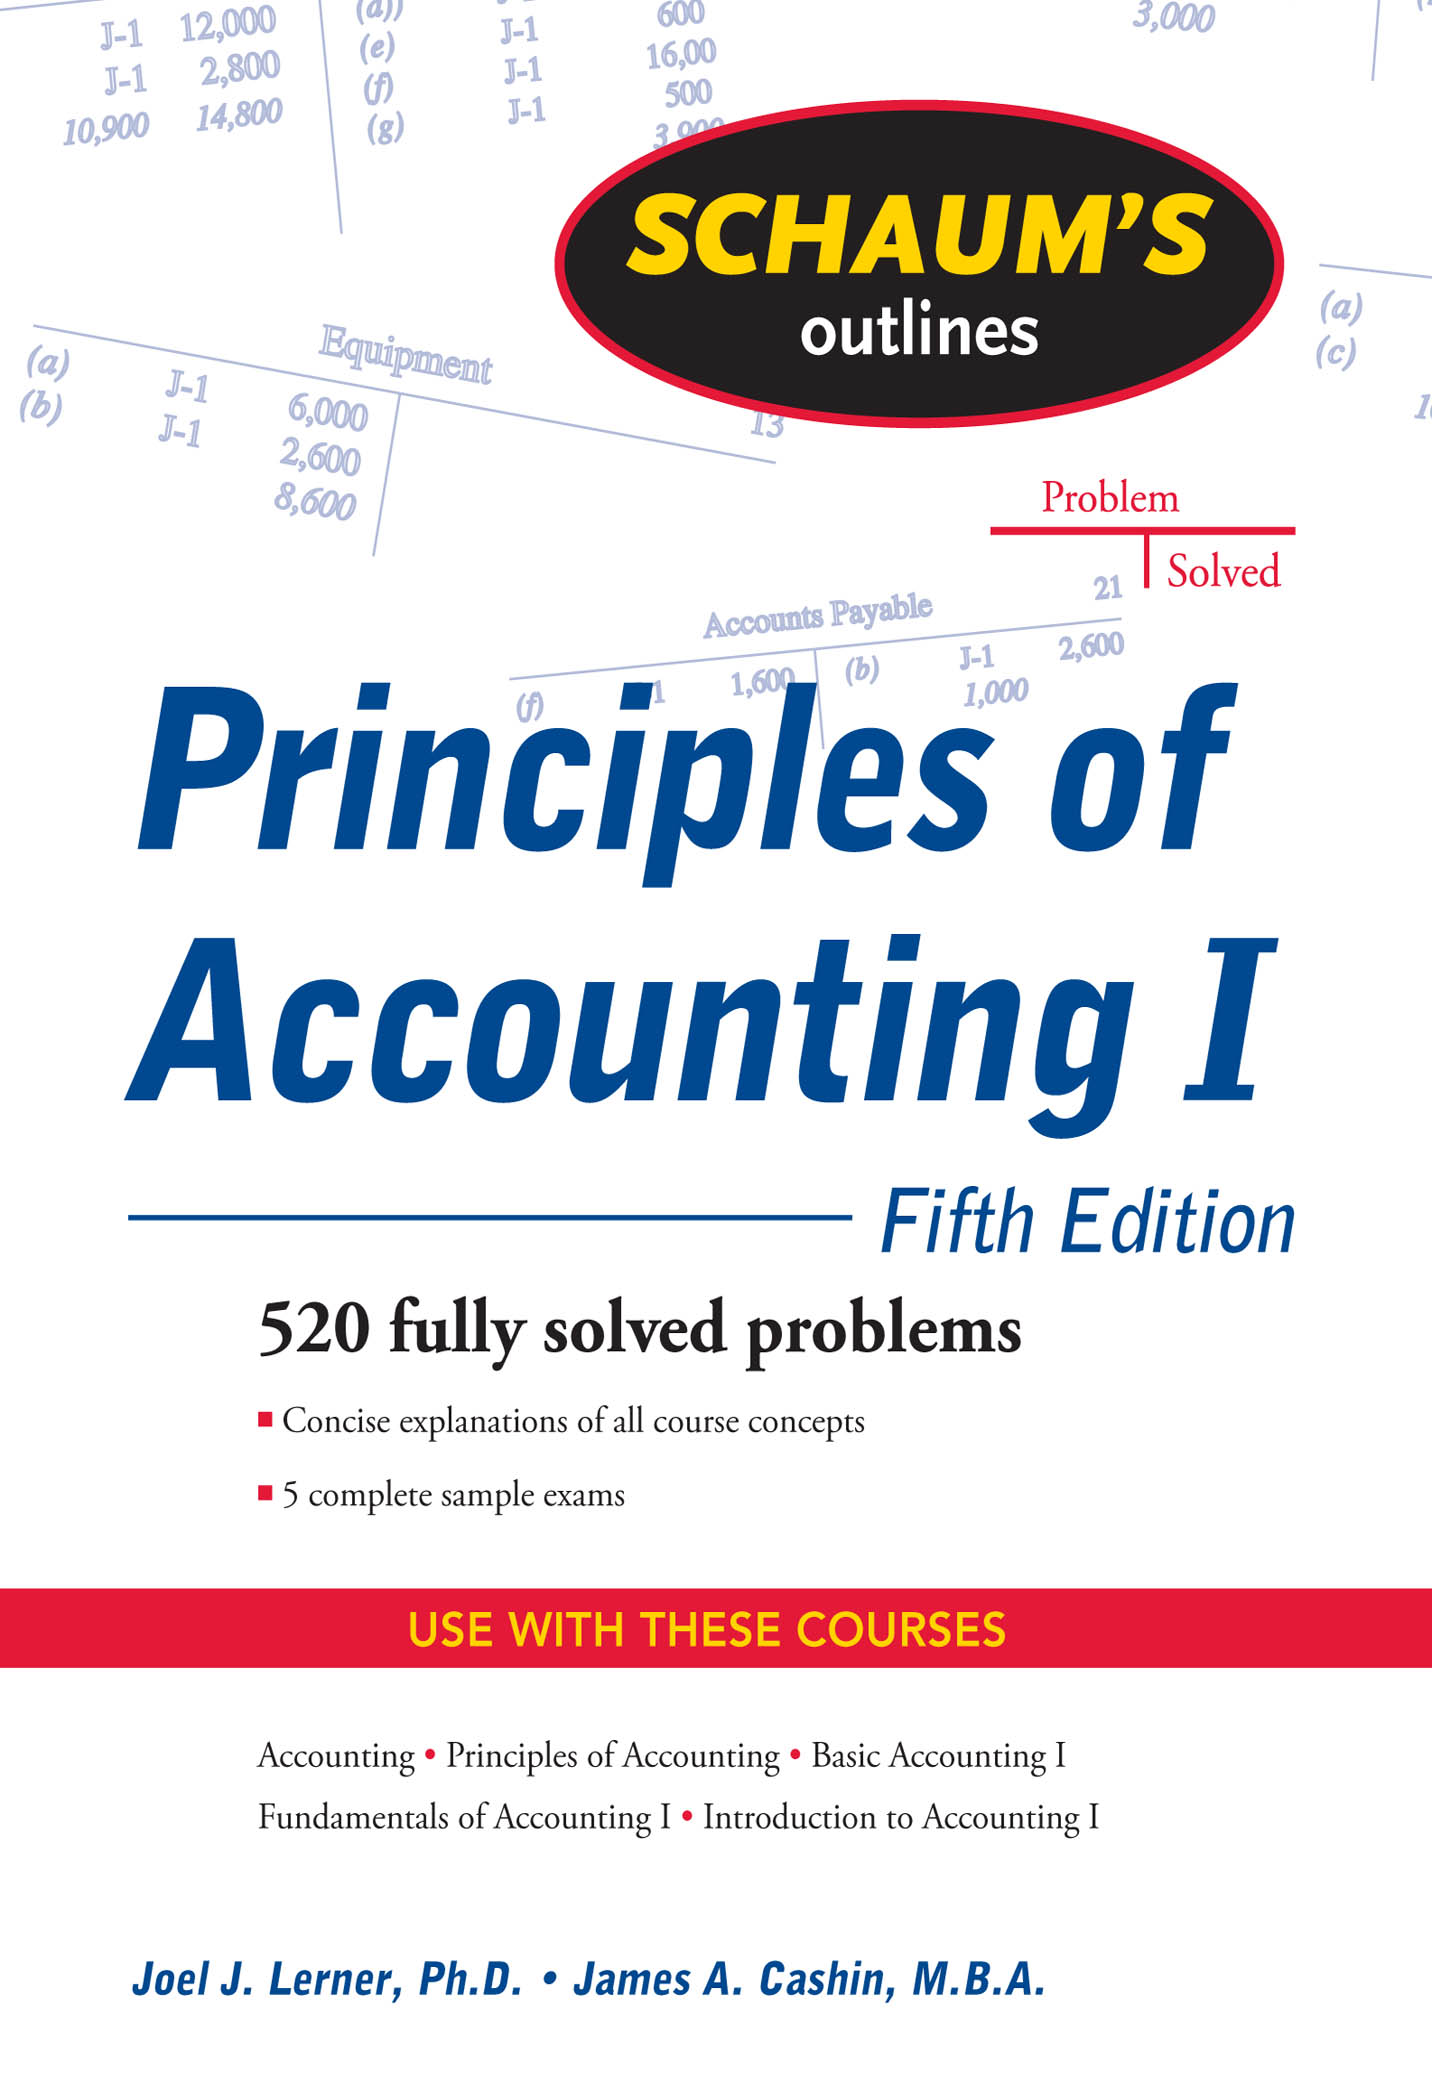 Download Ebook Schaum's Outline of Principles of Accounting I, Fifth Edition (5th ed.) by Joel J. Lerner Pdf